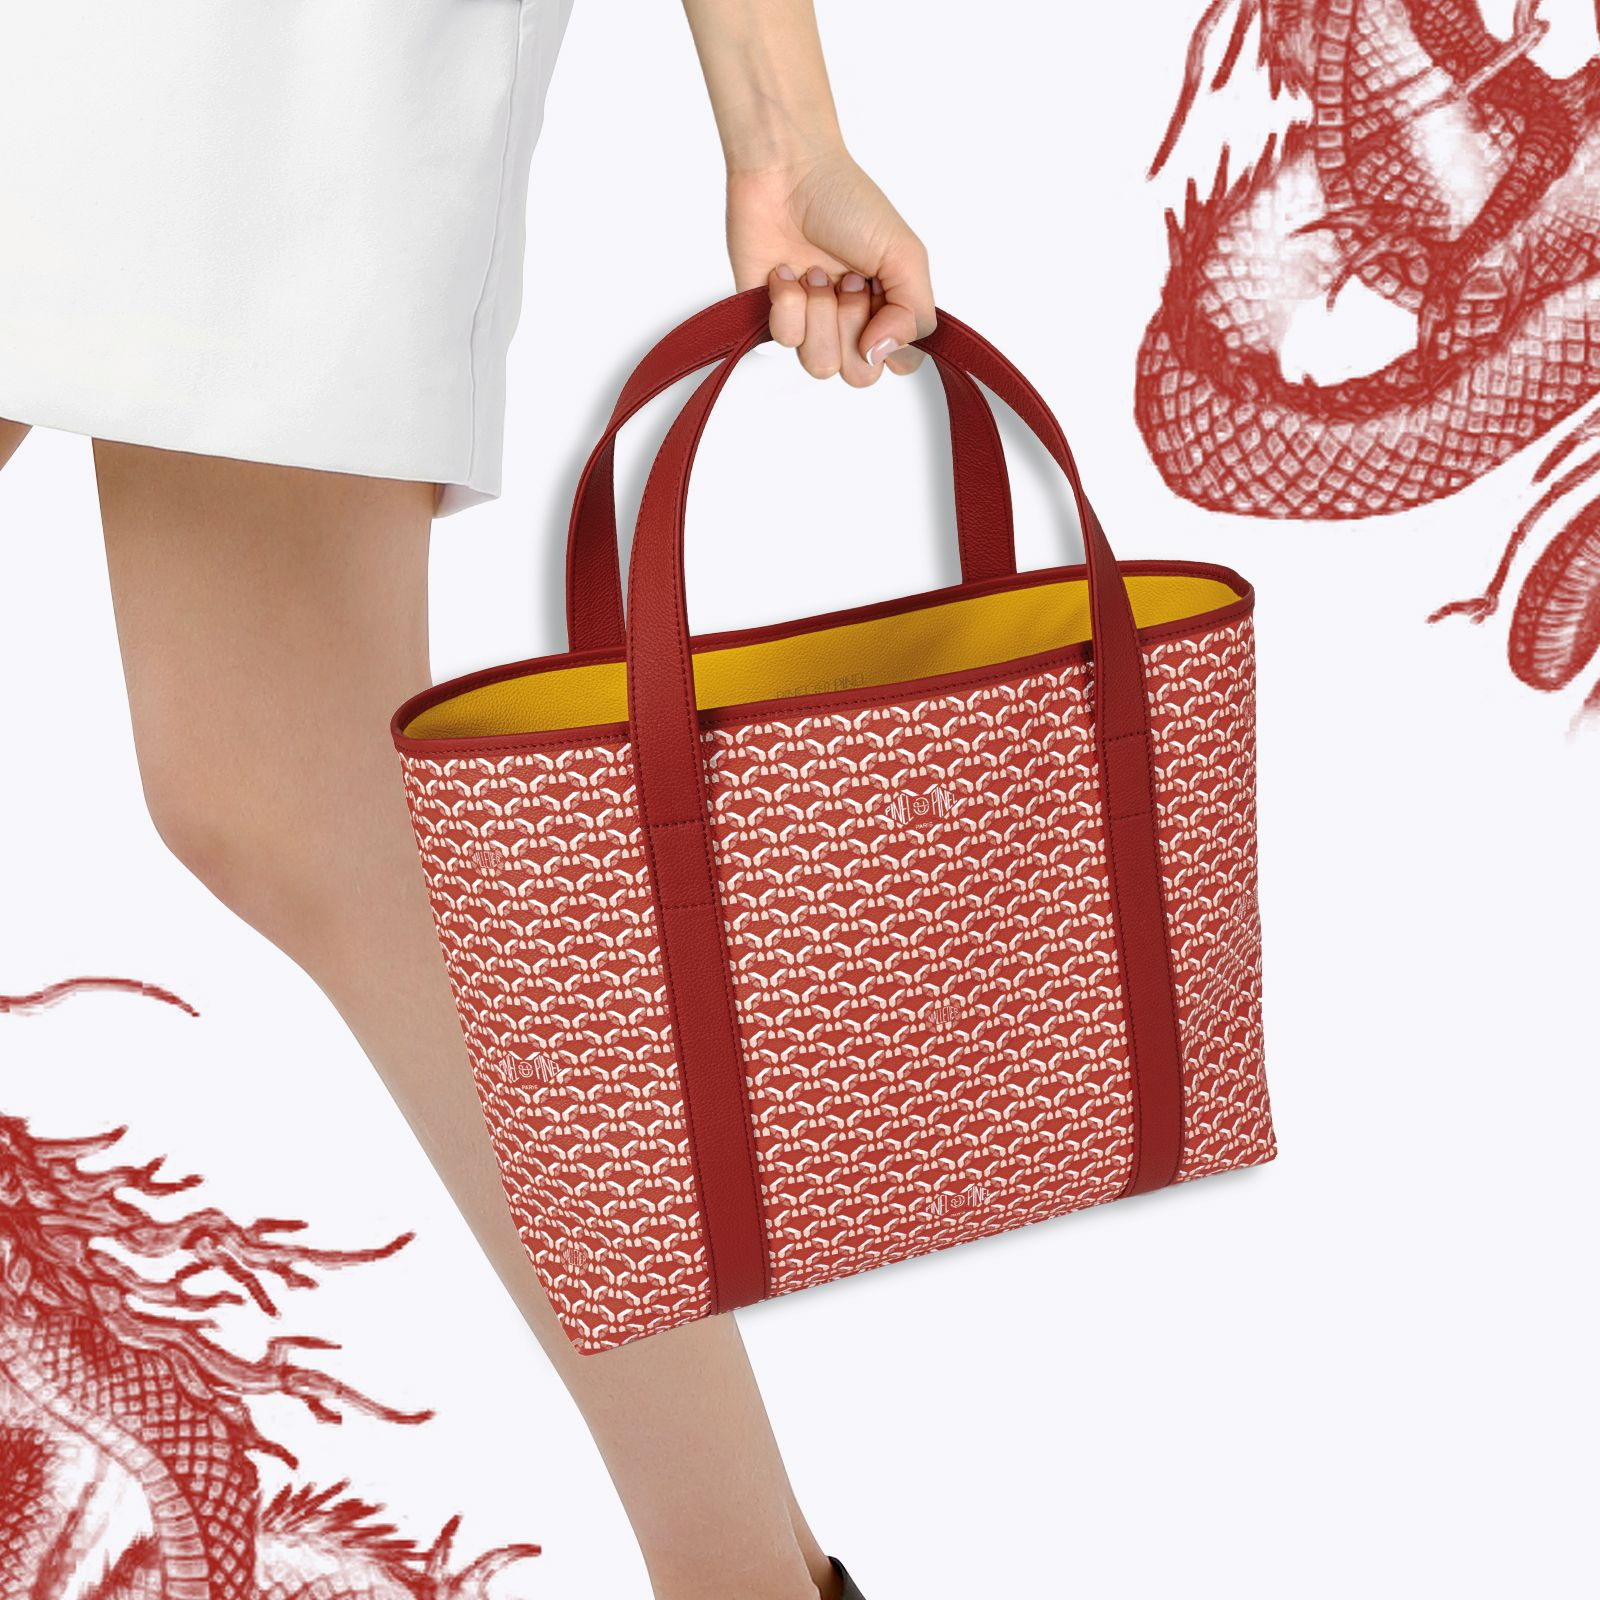 Colette Tote Bags